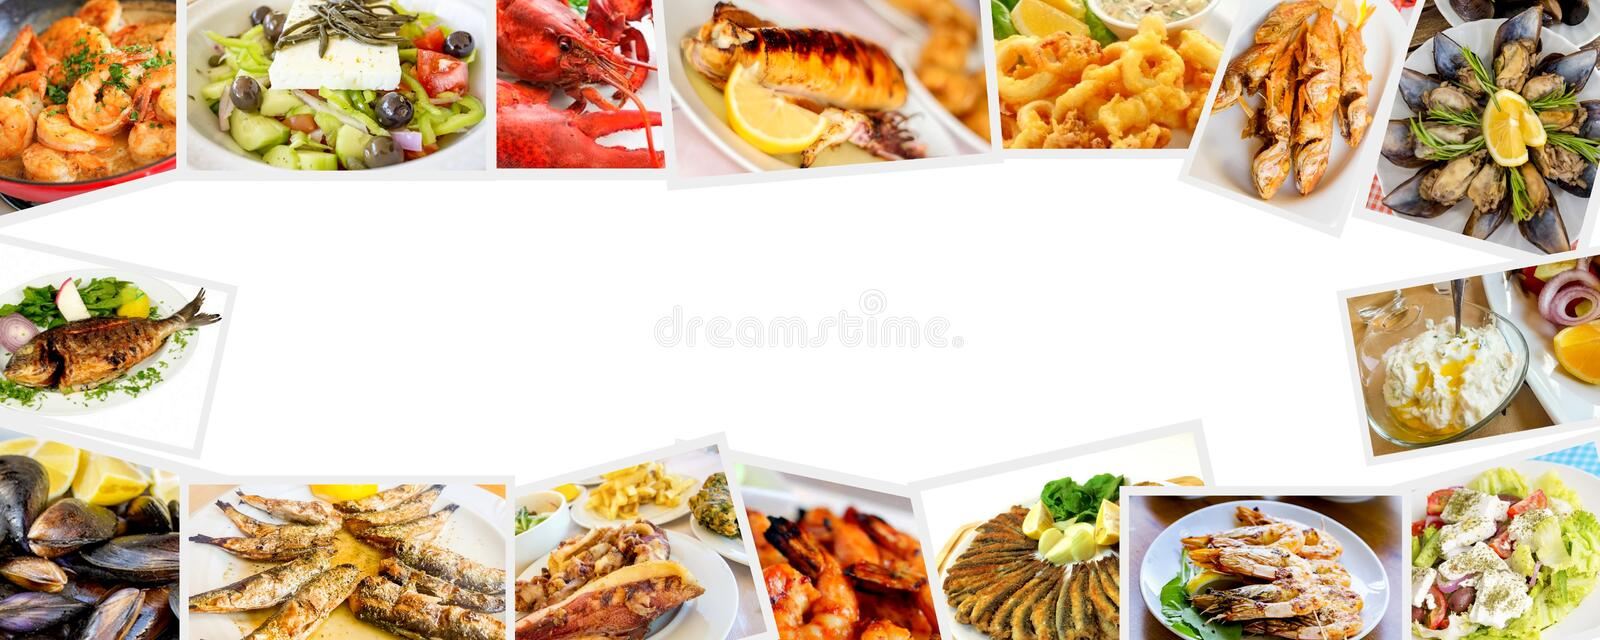 Food set of different seafoods collage. Food concept photo. Food set of different seafoods collage. Food concept photo stock photos